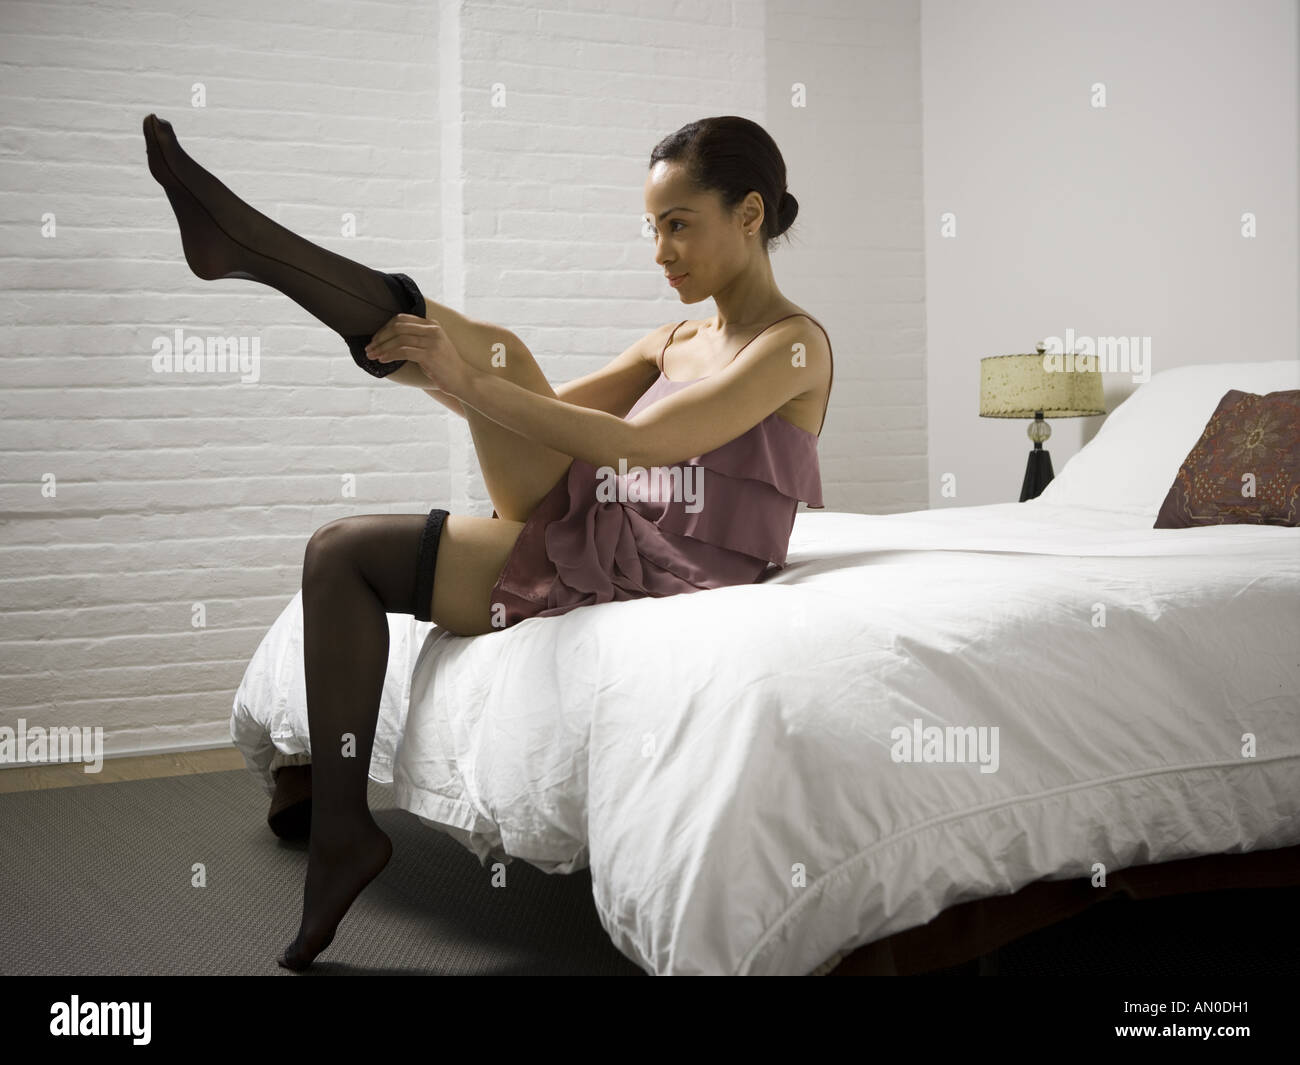 665ce3f32455c Portrait of a young woman putting on stockings Stock Photo: 8783312 ...